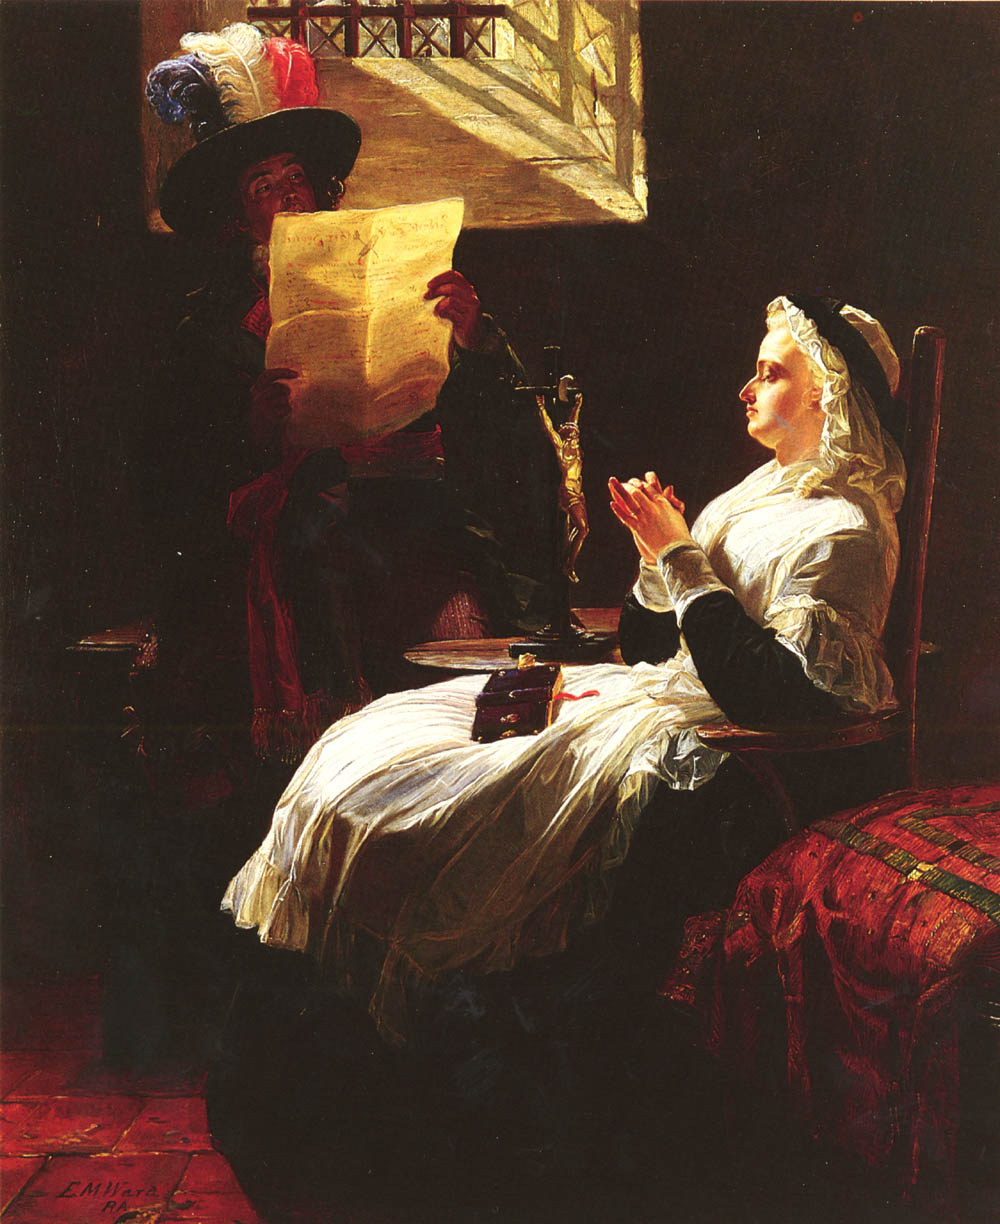 Marie Antoinette Listing To The Act of Accusation, The Day Before Her Trial :: Edward Matthew Ward - History painting ôîòî